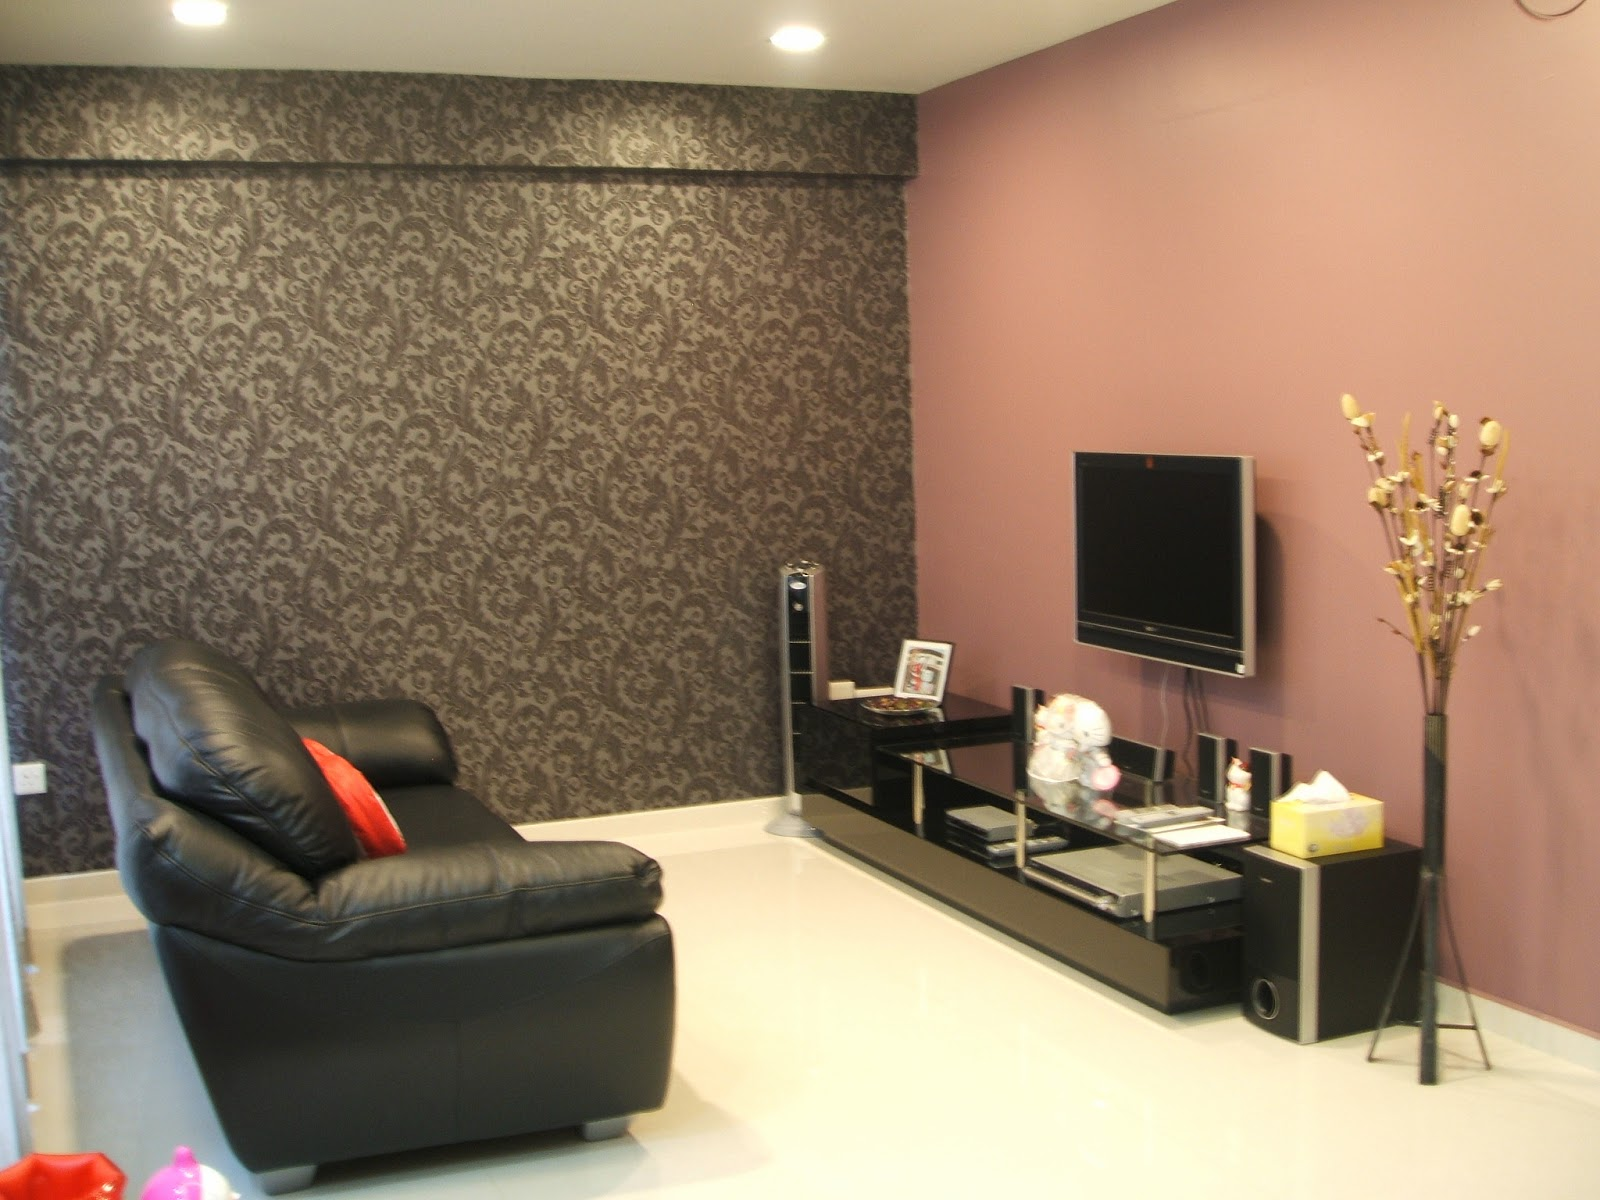 Cool Light Red Mixed Brown Patterned Wall Paint Small Living Room Paint  Colors With Cozy Leather Black Sectional Sofa And Nice Tv Wall Unit Complete  With ...